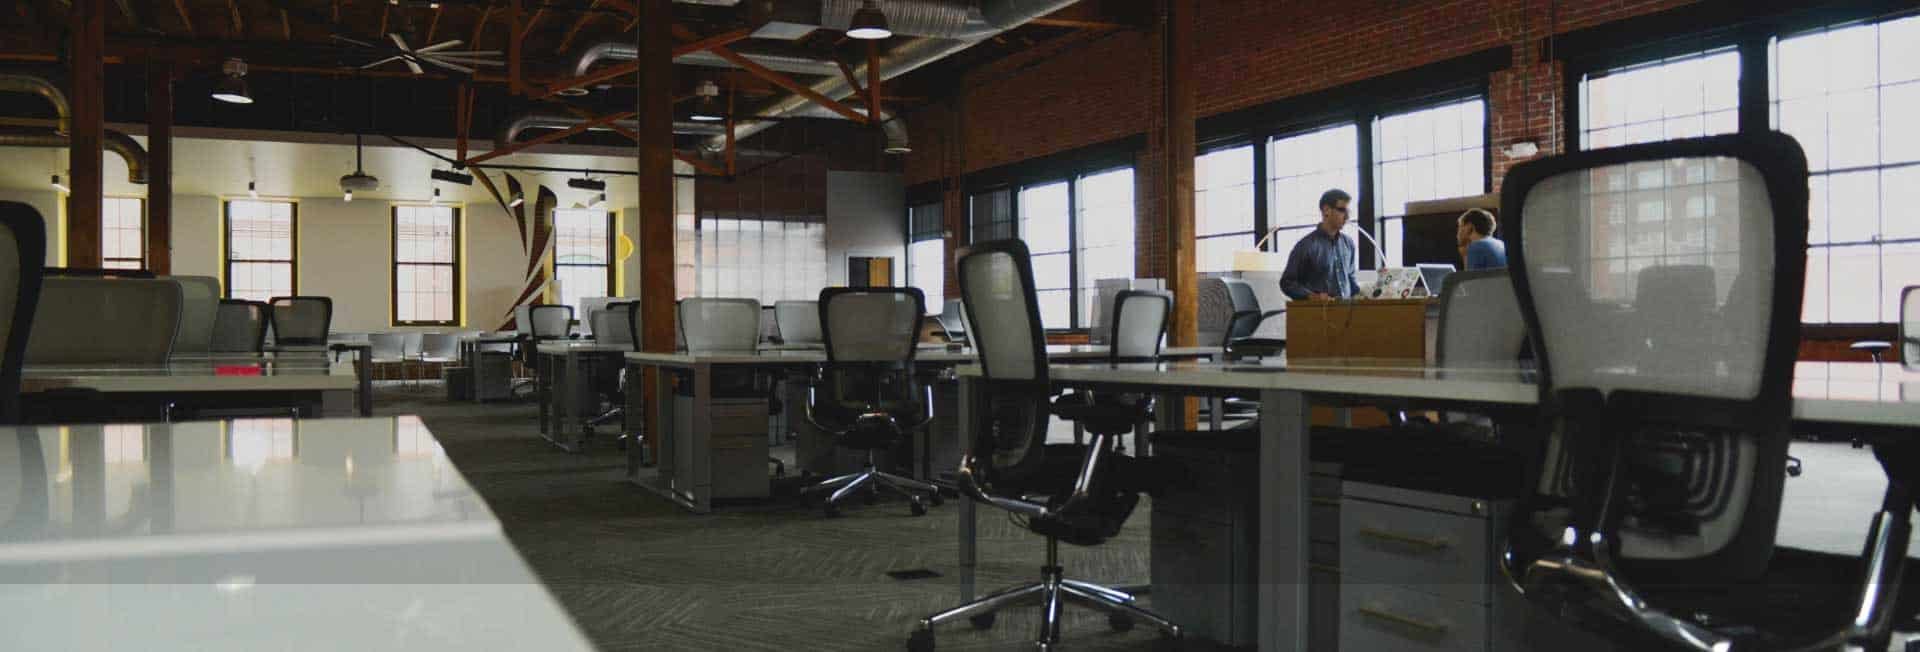 Office space with coworking desks